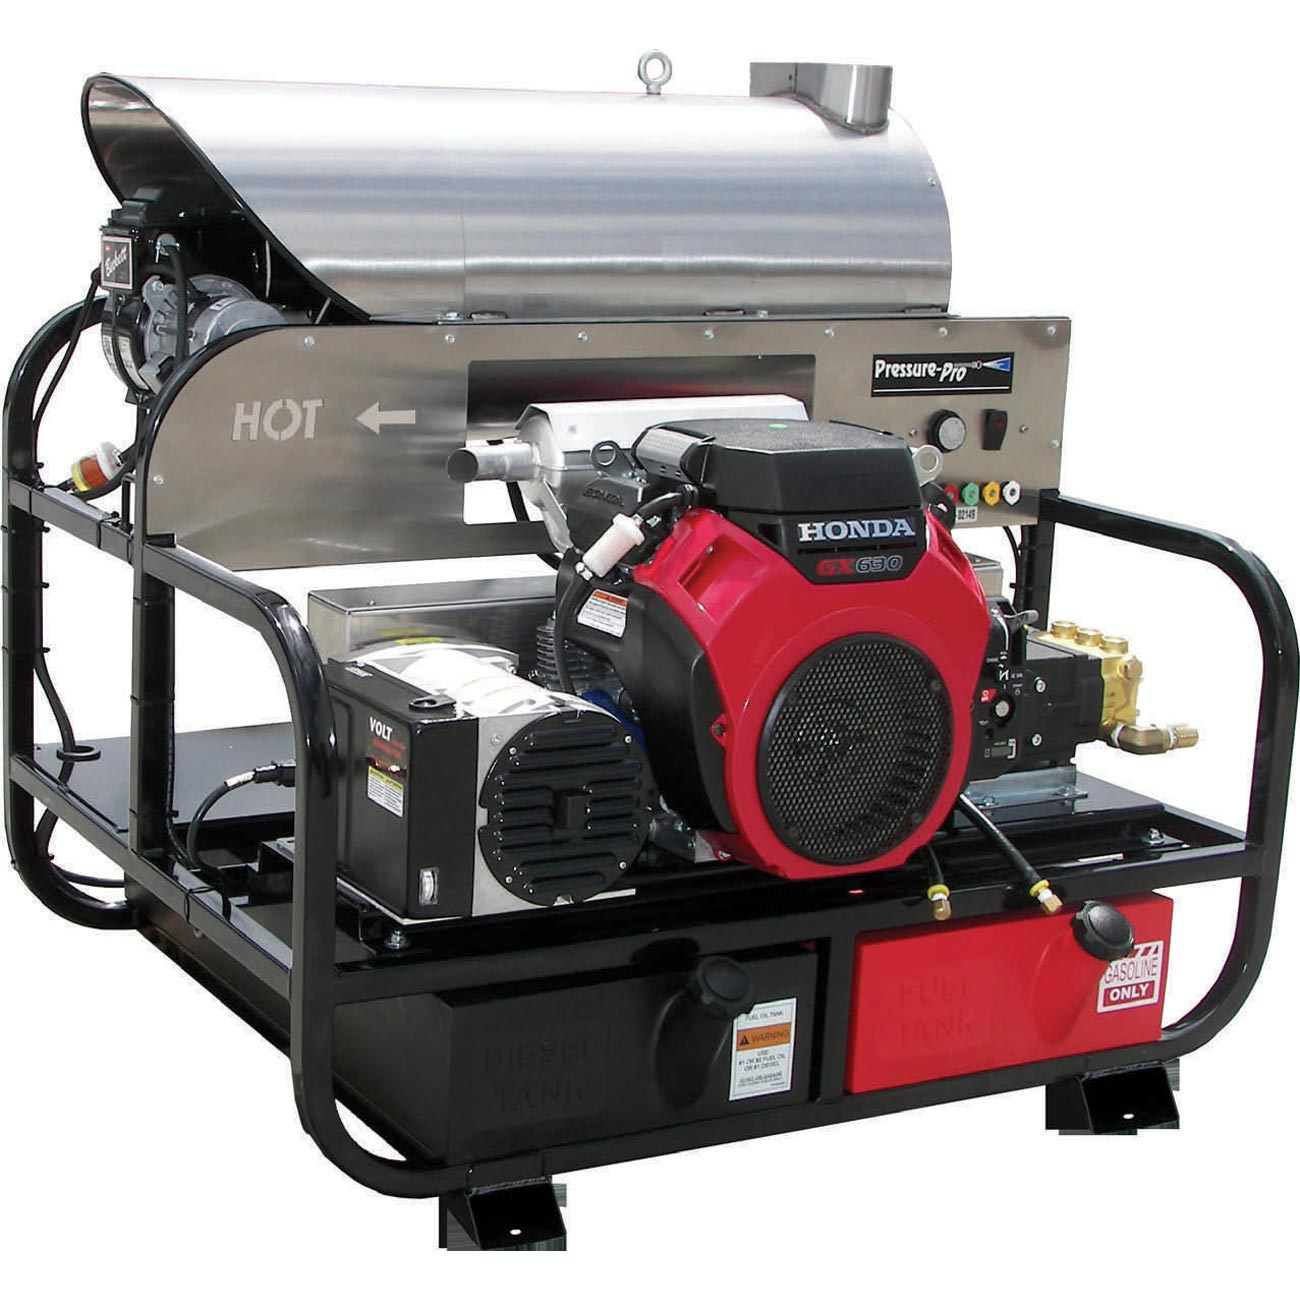 Pressure pro super skid 8115pro 30hg hot washer 8gpm 3000psi 24hp click to enlarge publicscrutiny Gallery